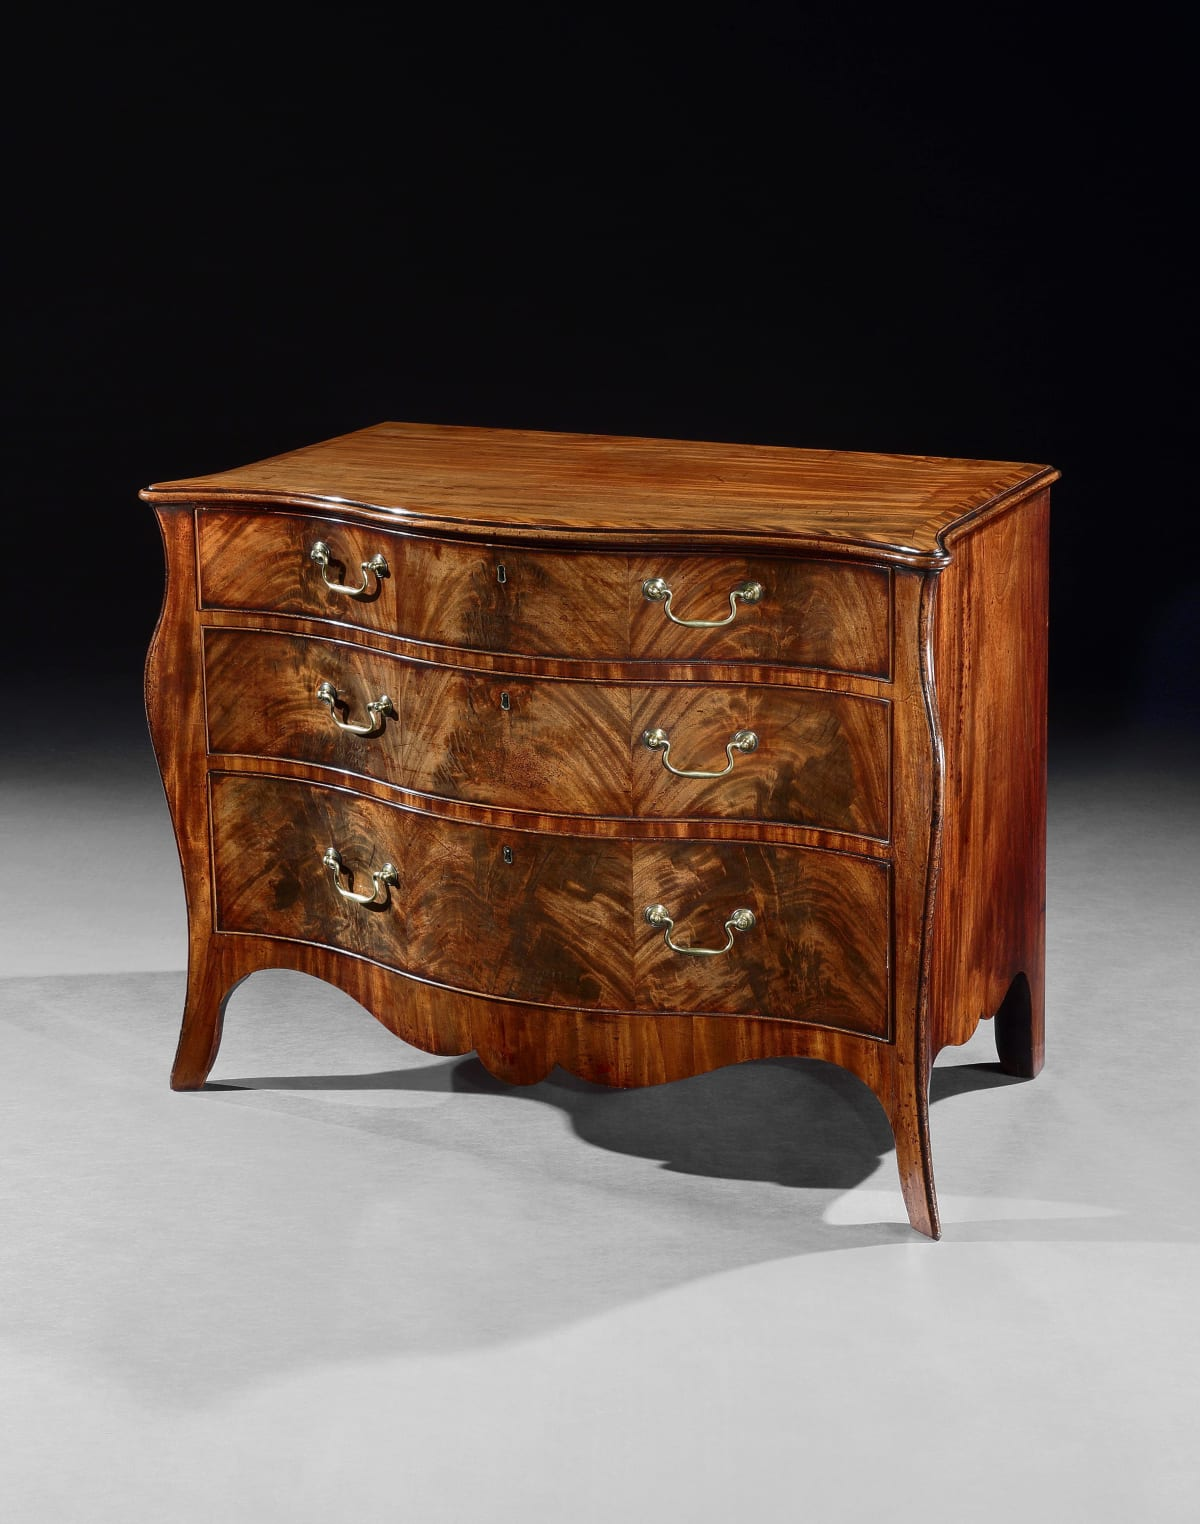 A GEORGE III MAHOGANY COMMODE ATTRIBUTED TO HENRY HILL, ENGLISH, CIRCA 1775